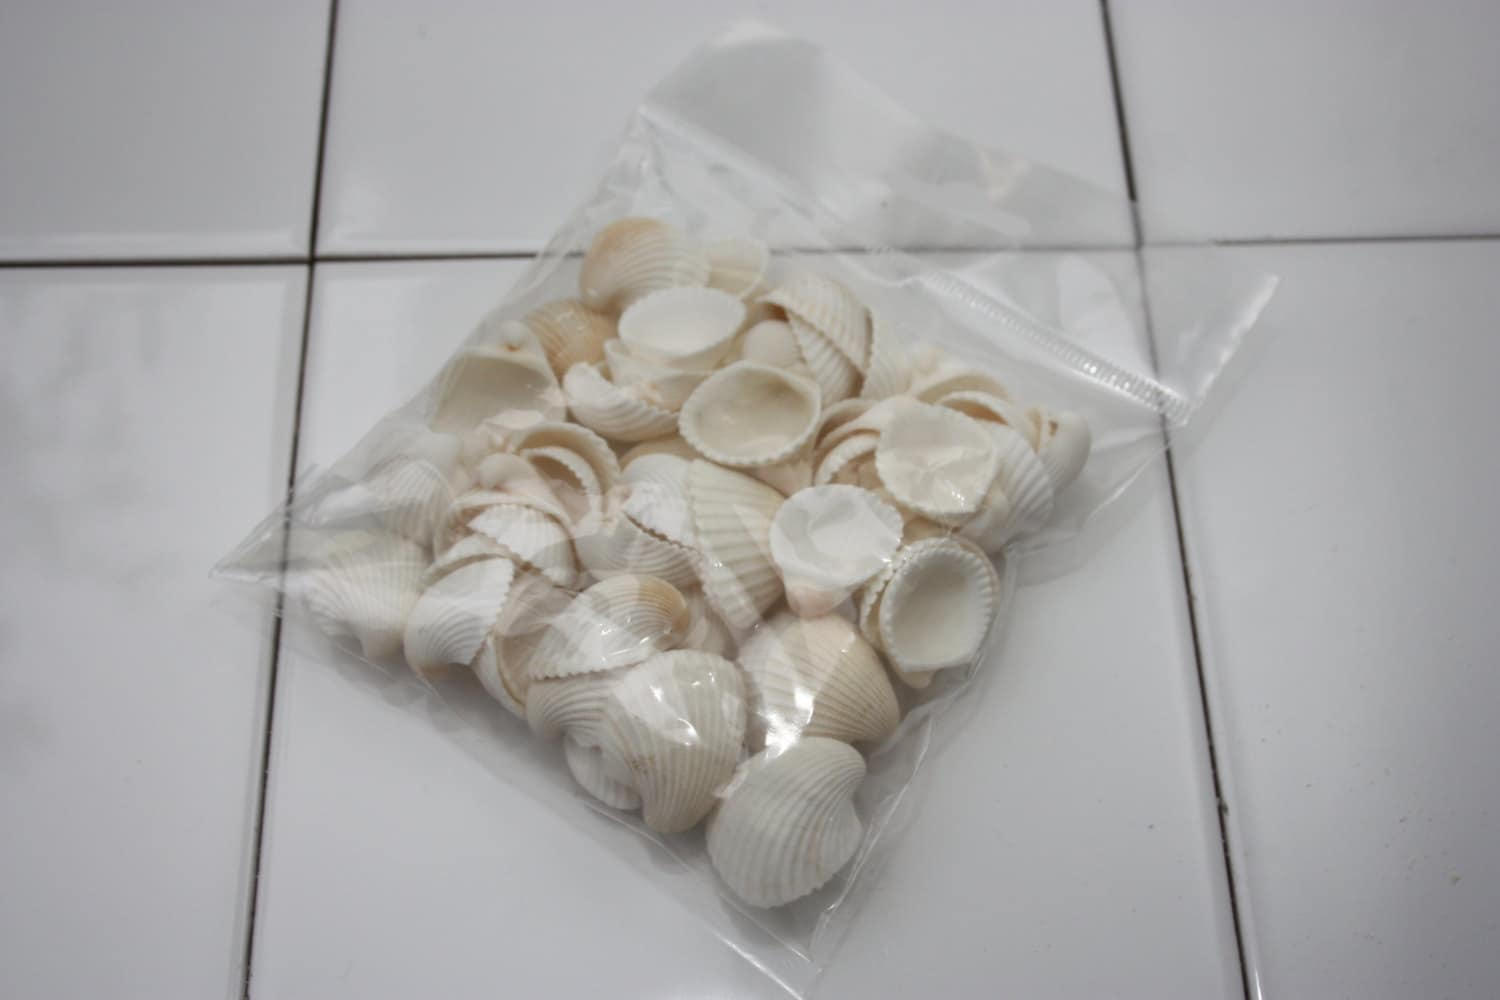 bag of 50 white cockle sea shells natural decor and craft